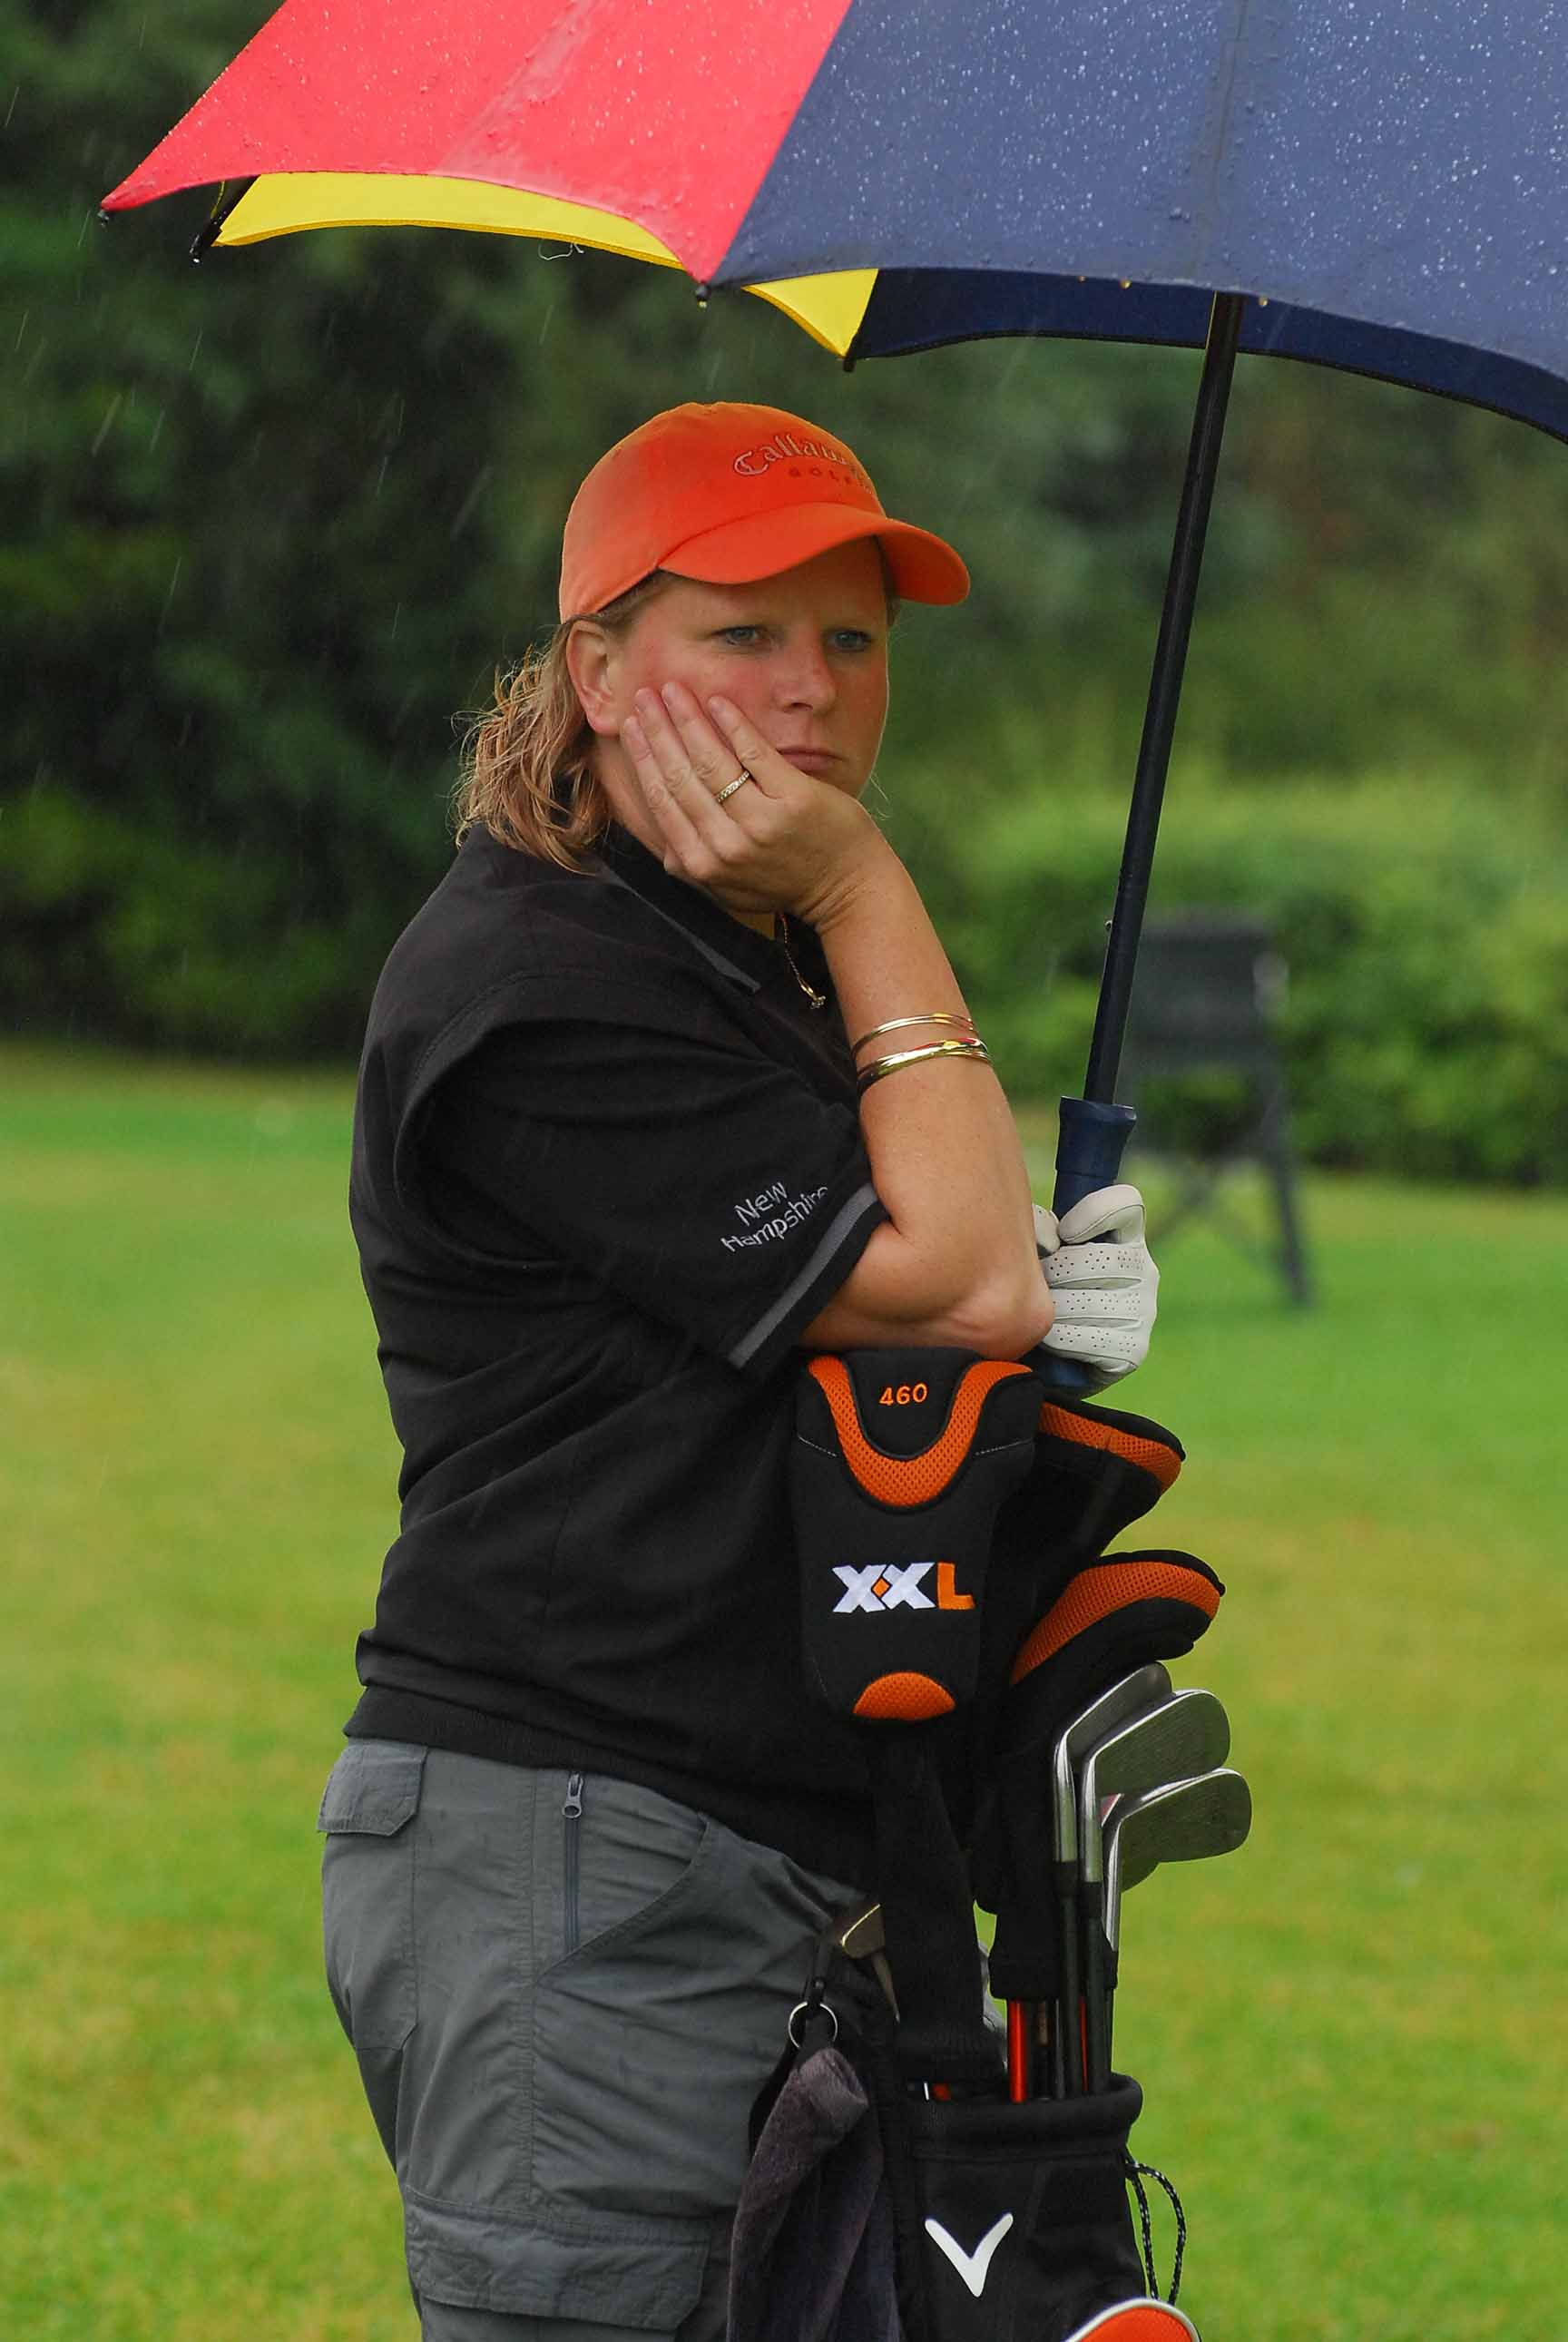 Passionate about Golf